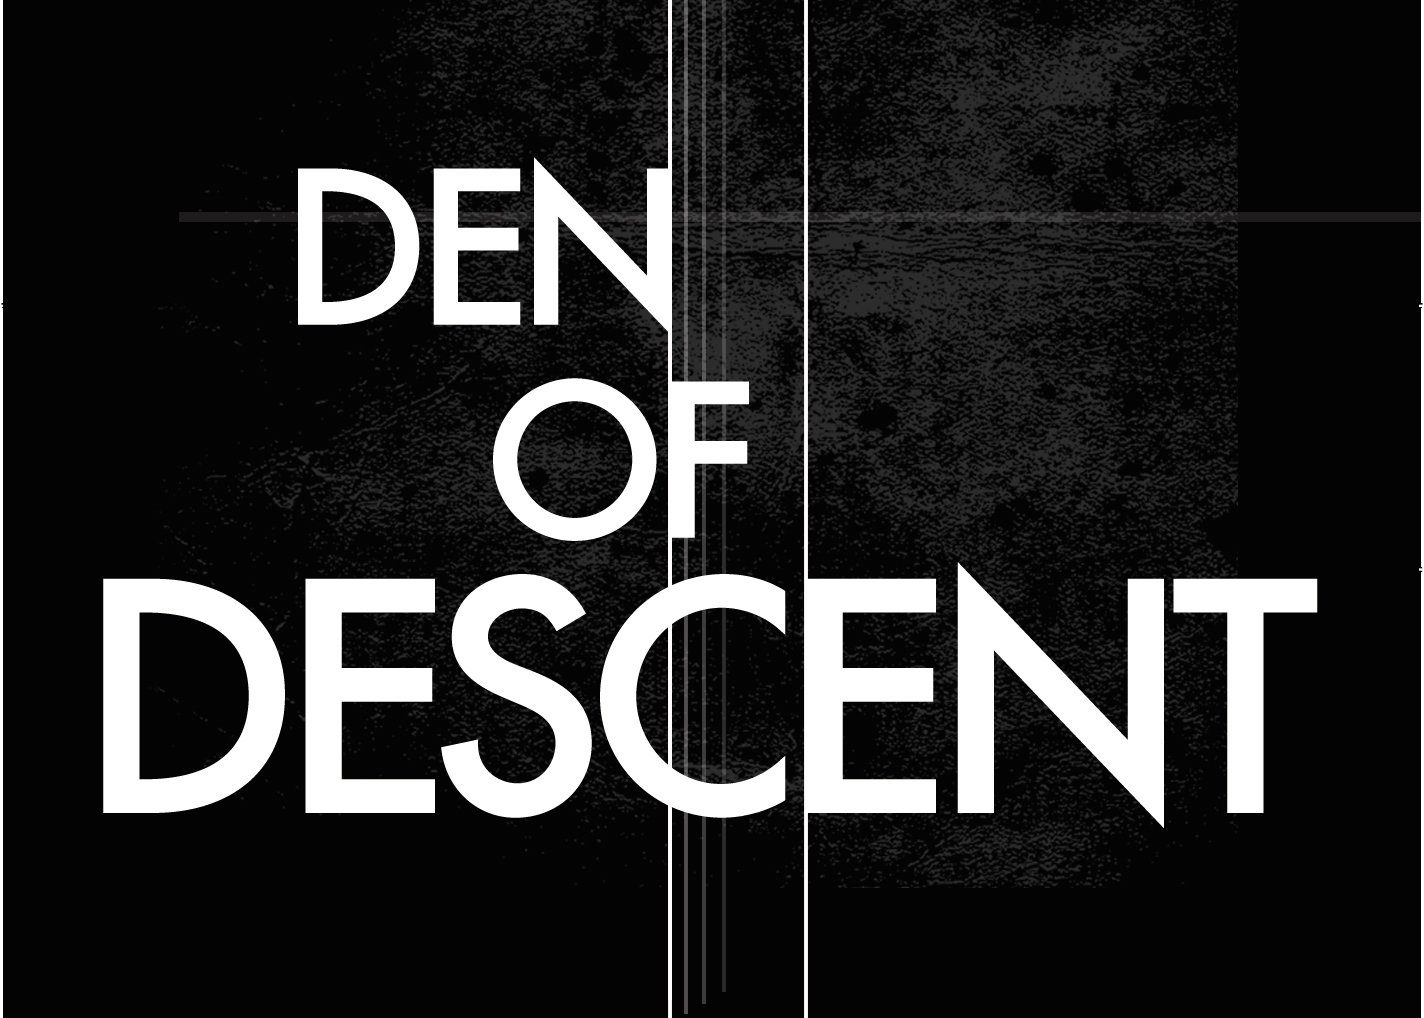 Den of Descent